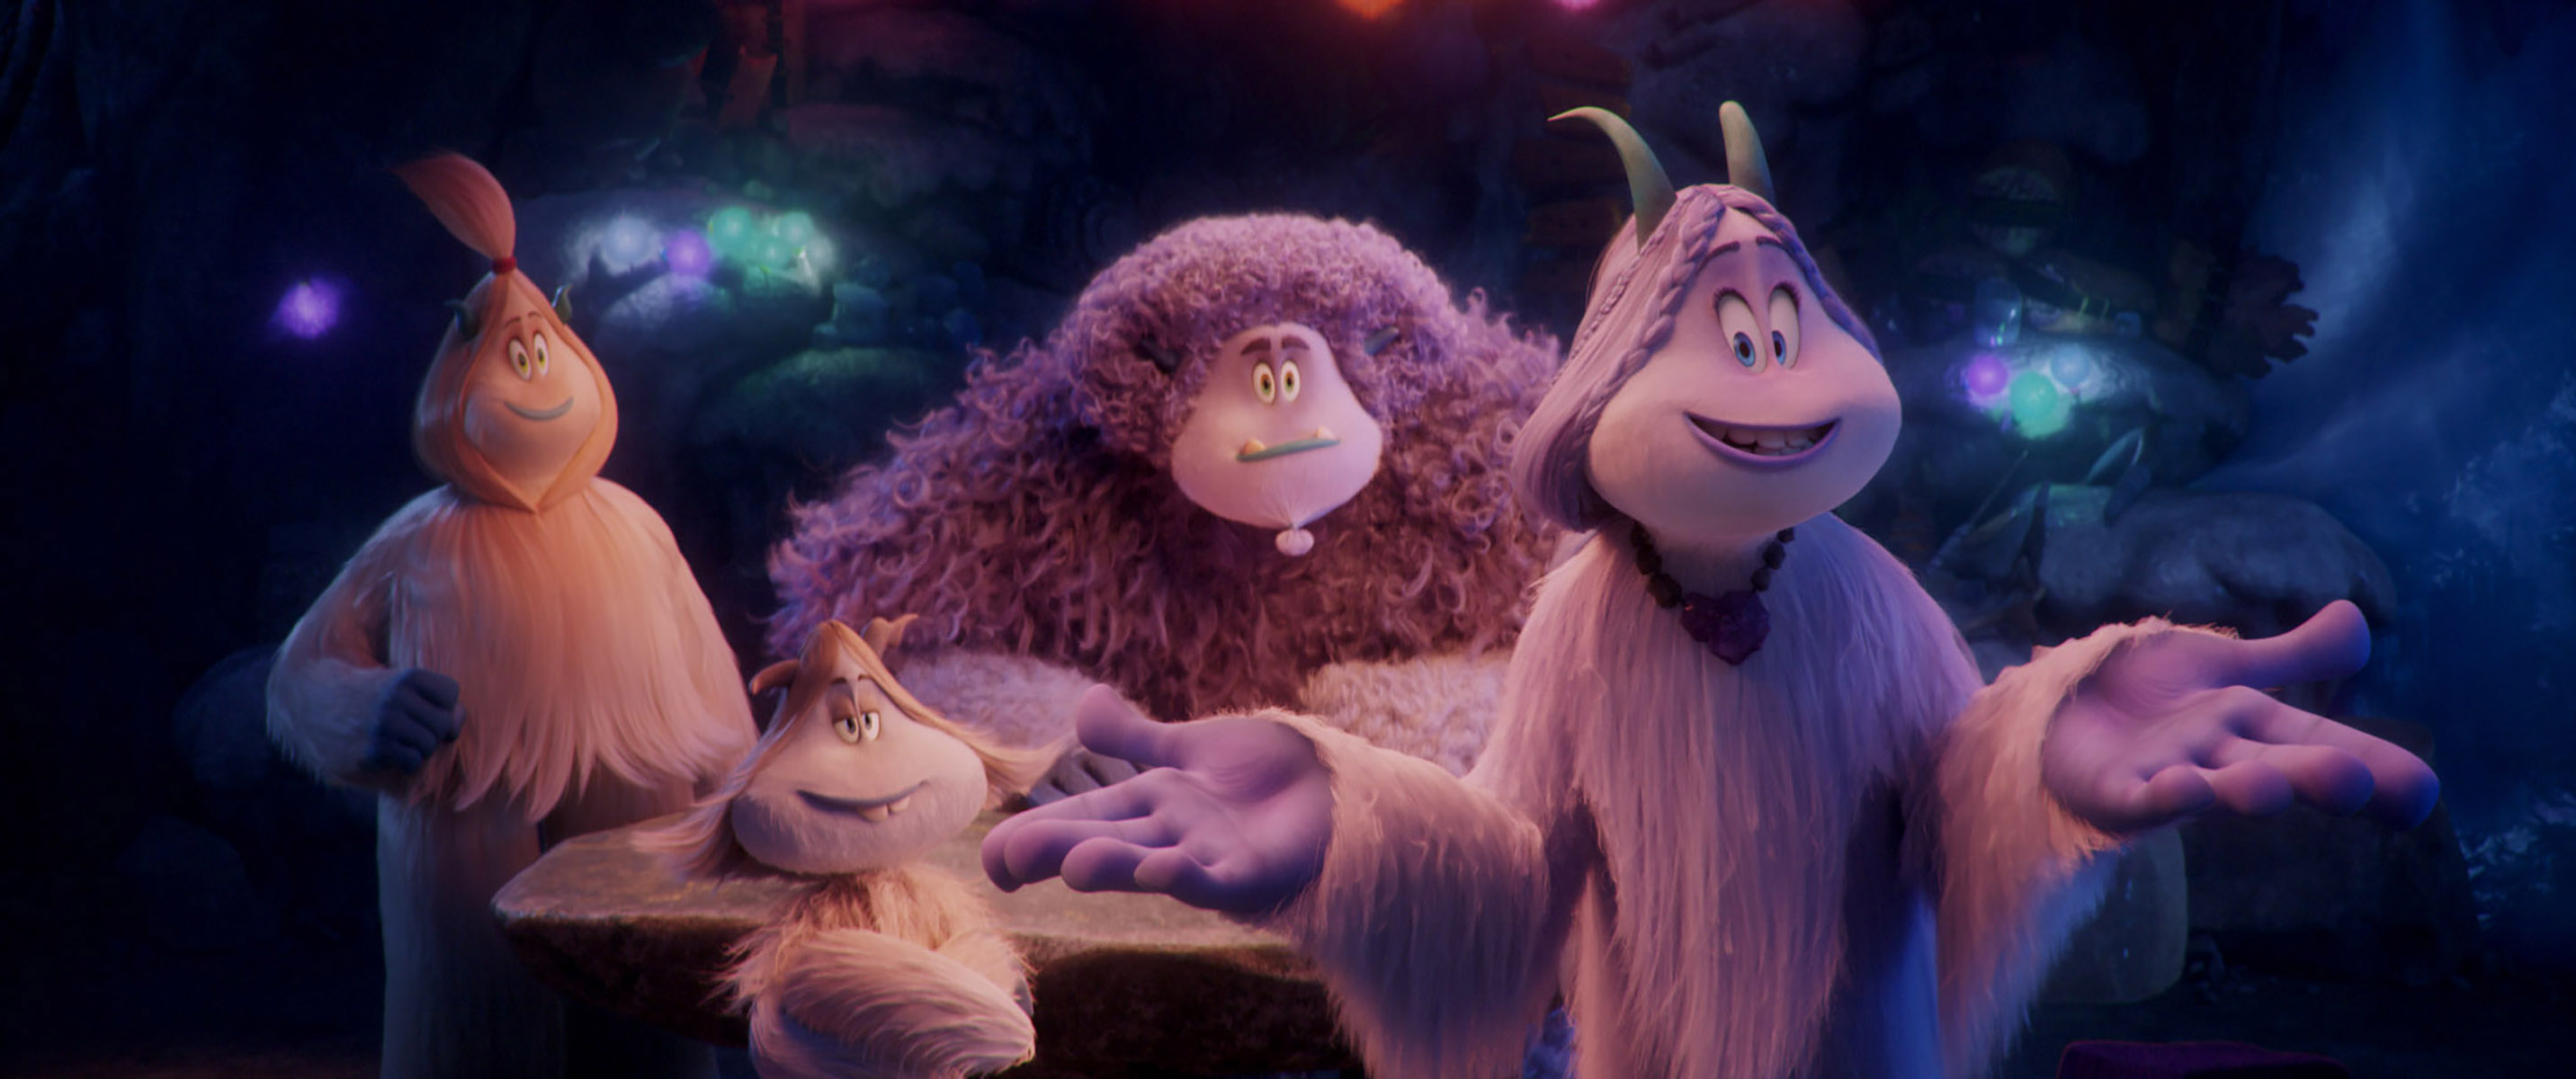 Smallfoot Gallery 7